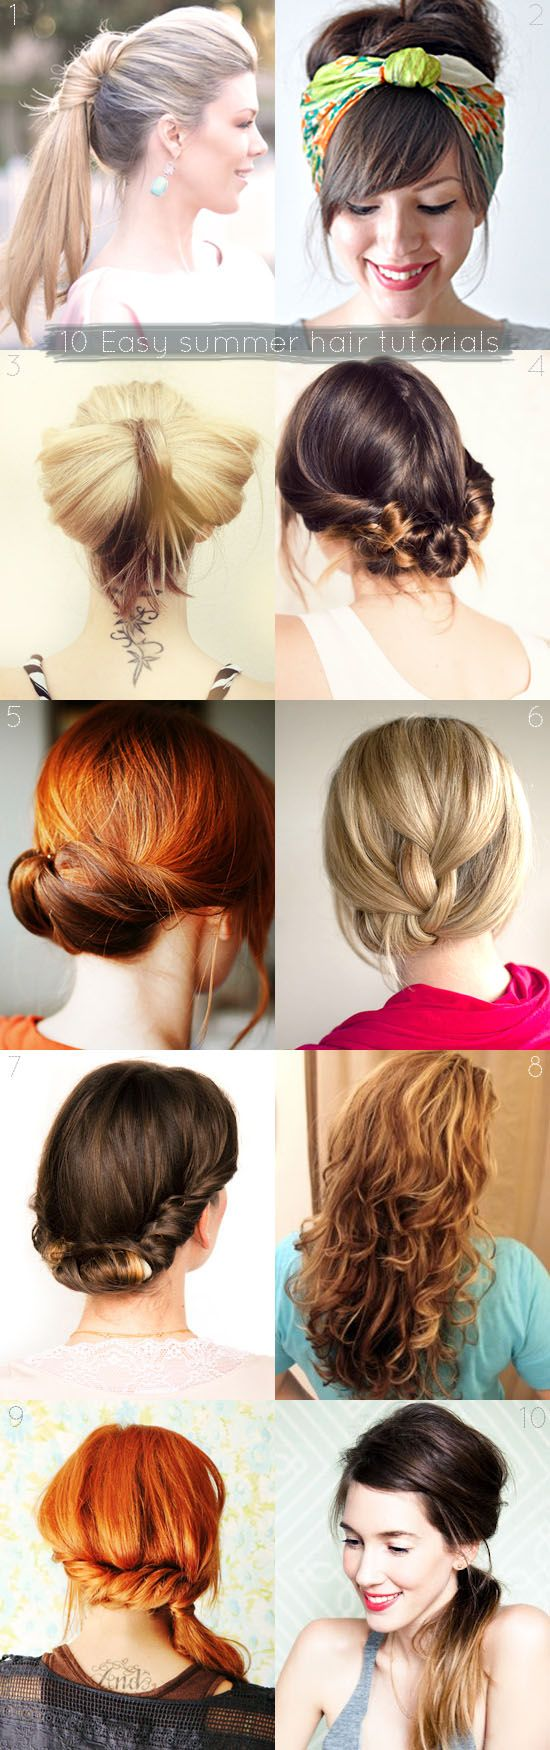 10 easy and quick summer hair tutorials. For when you want to look good but it's just too hot to stand in front of the mirror for a long time. . . @ By Wilma. I'm gonna try this sock bun idea to make curly hair